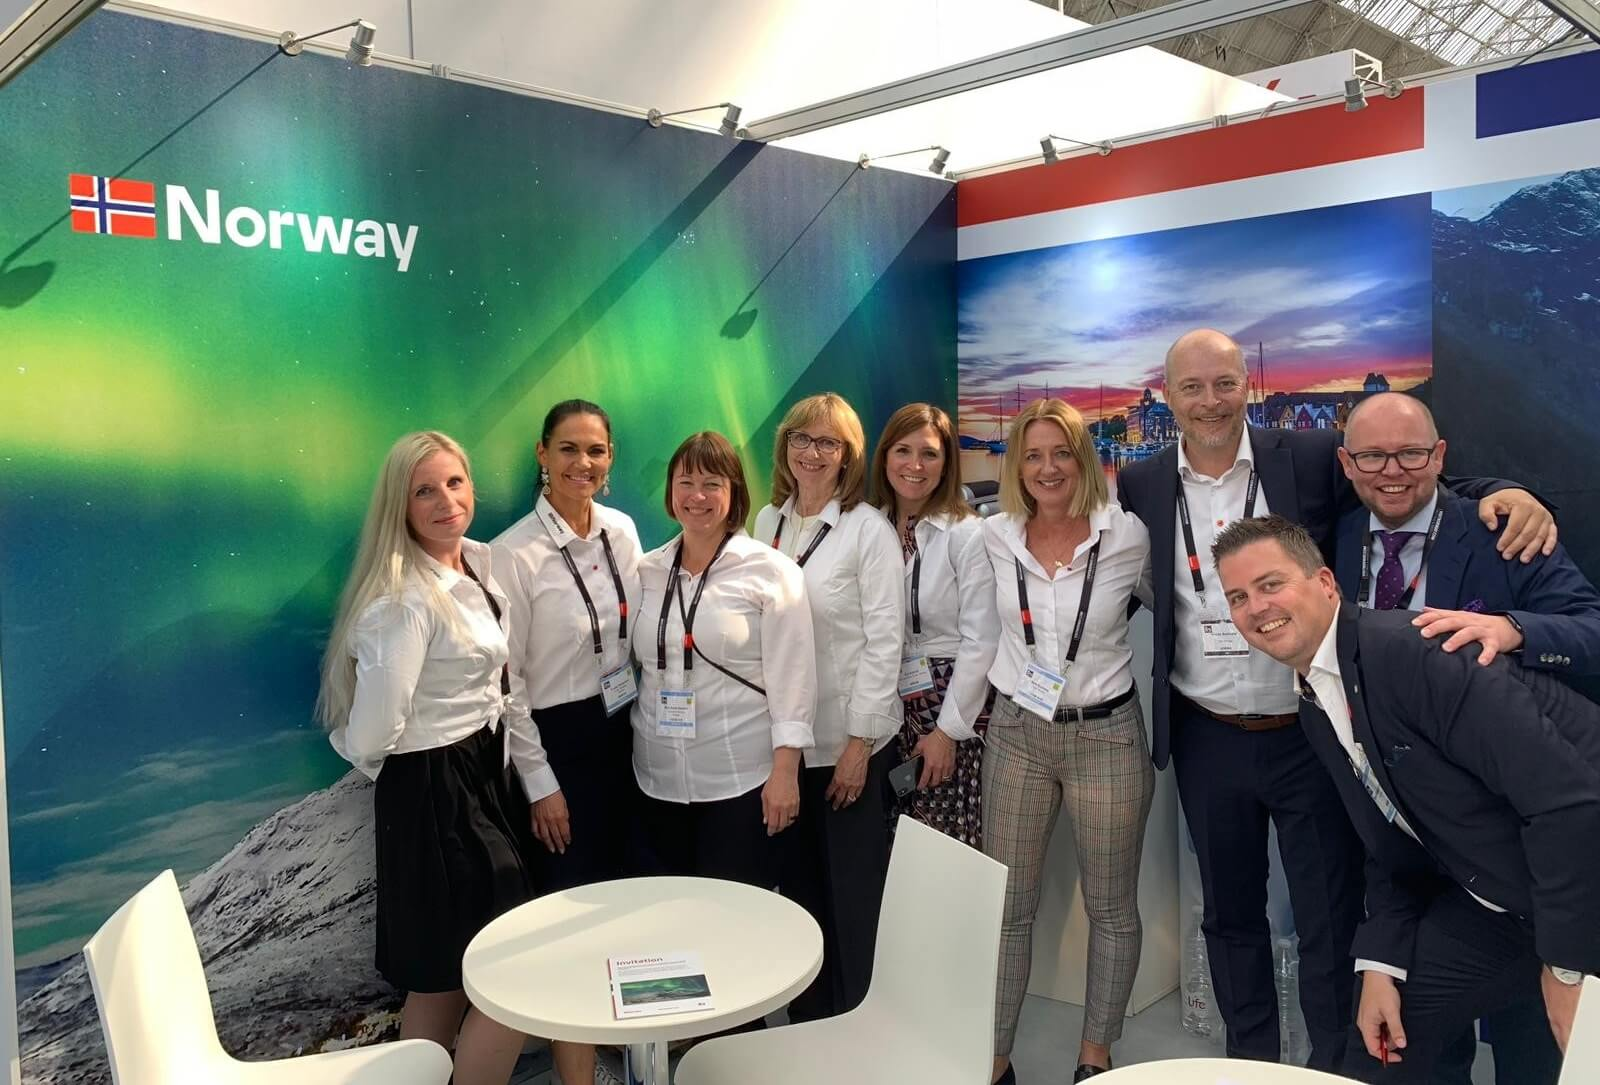 Norway Tourism focuses on face to face as it targets association and corporate buyers